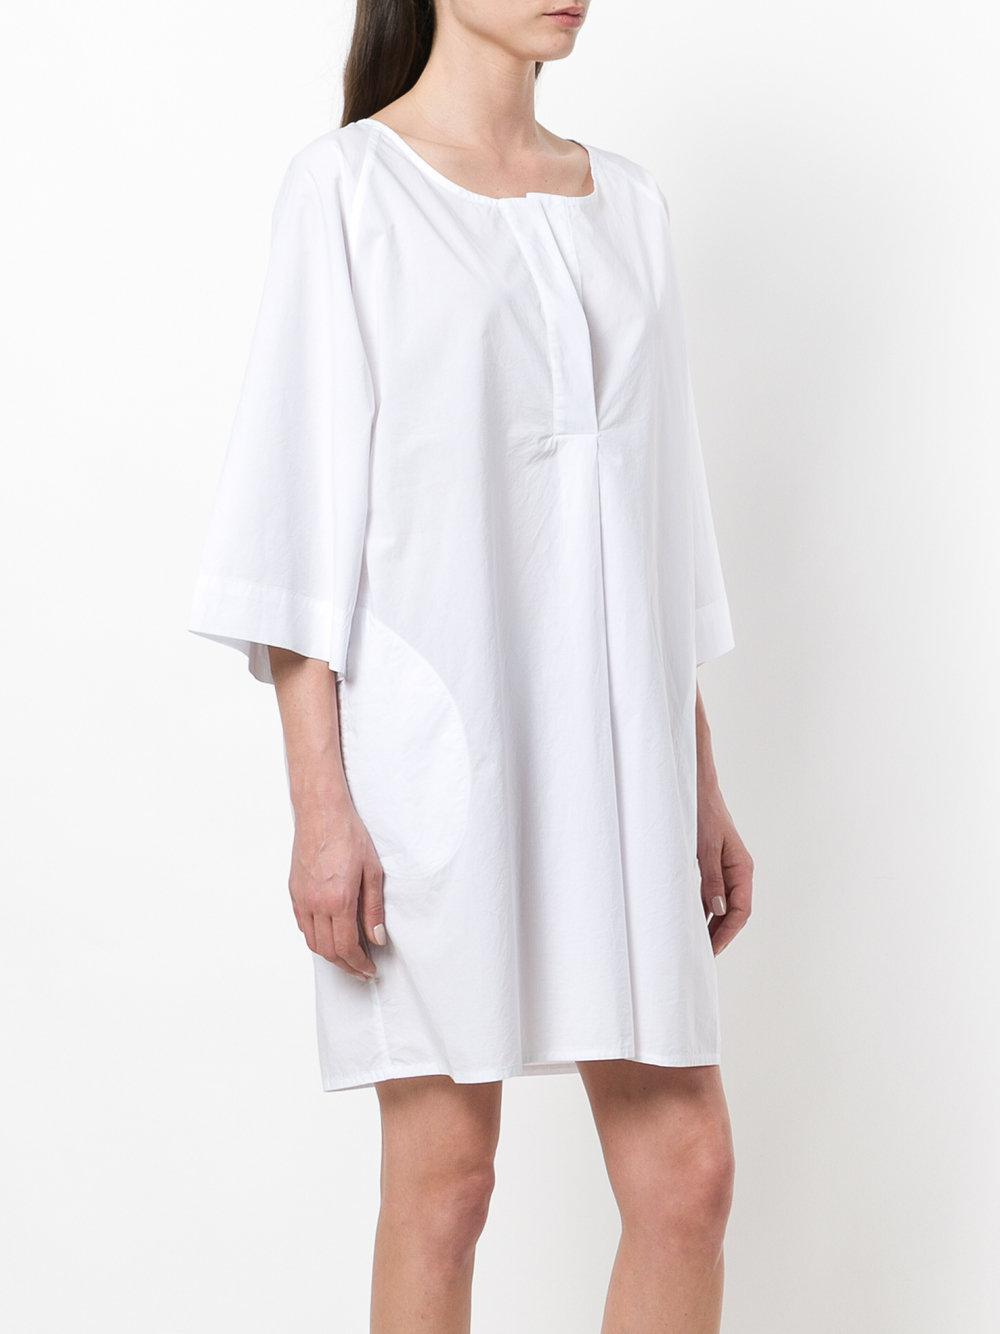 White dress with ribbon Woolrich Free Shipping Best Store To Get Outlet Best Sale Big Discount Online R5MH2Qd8h